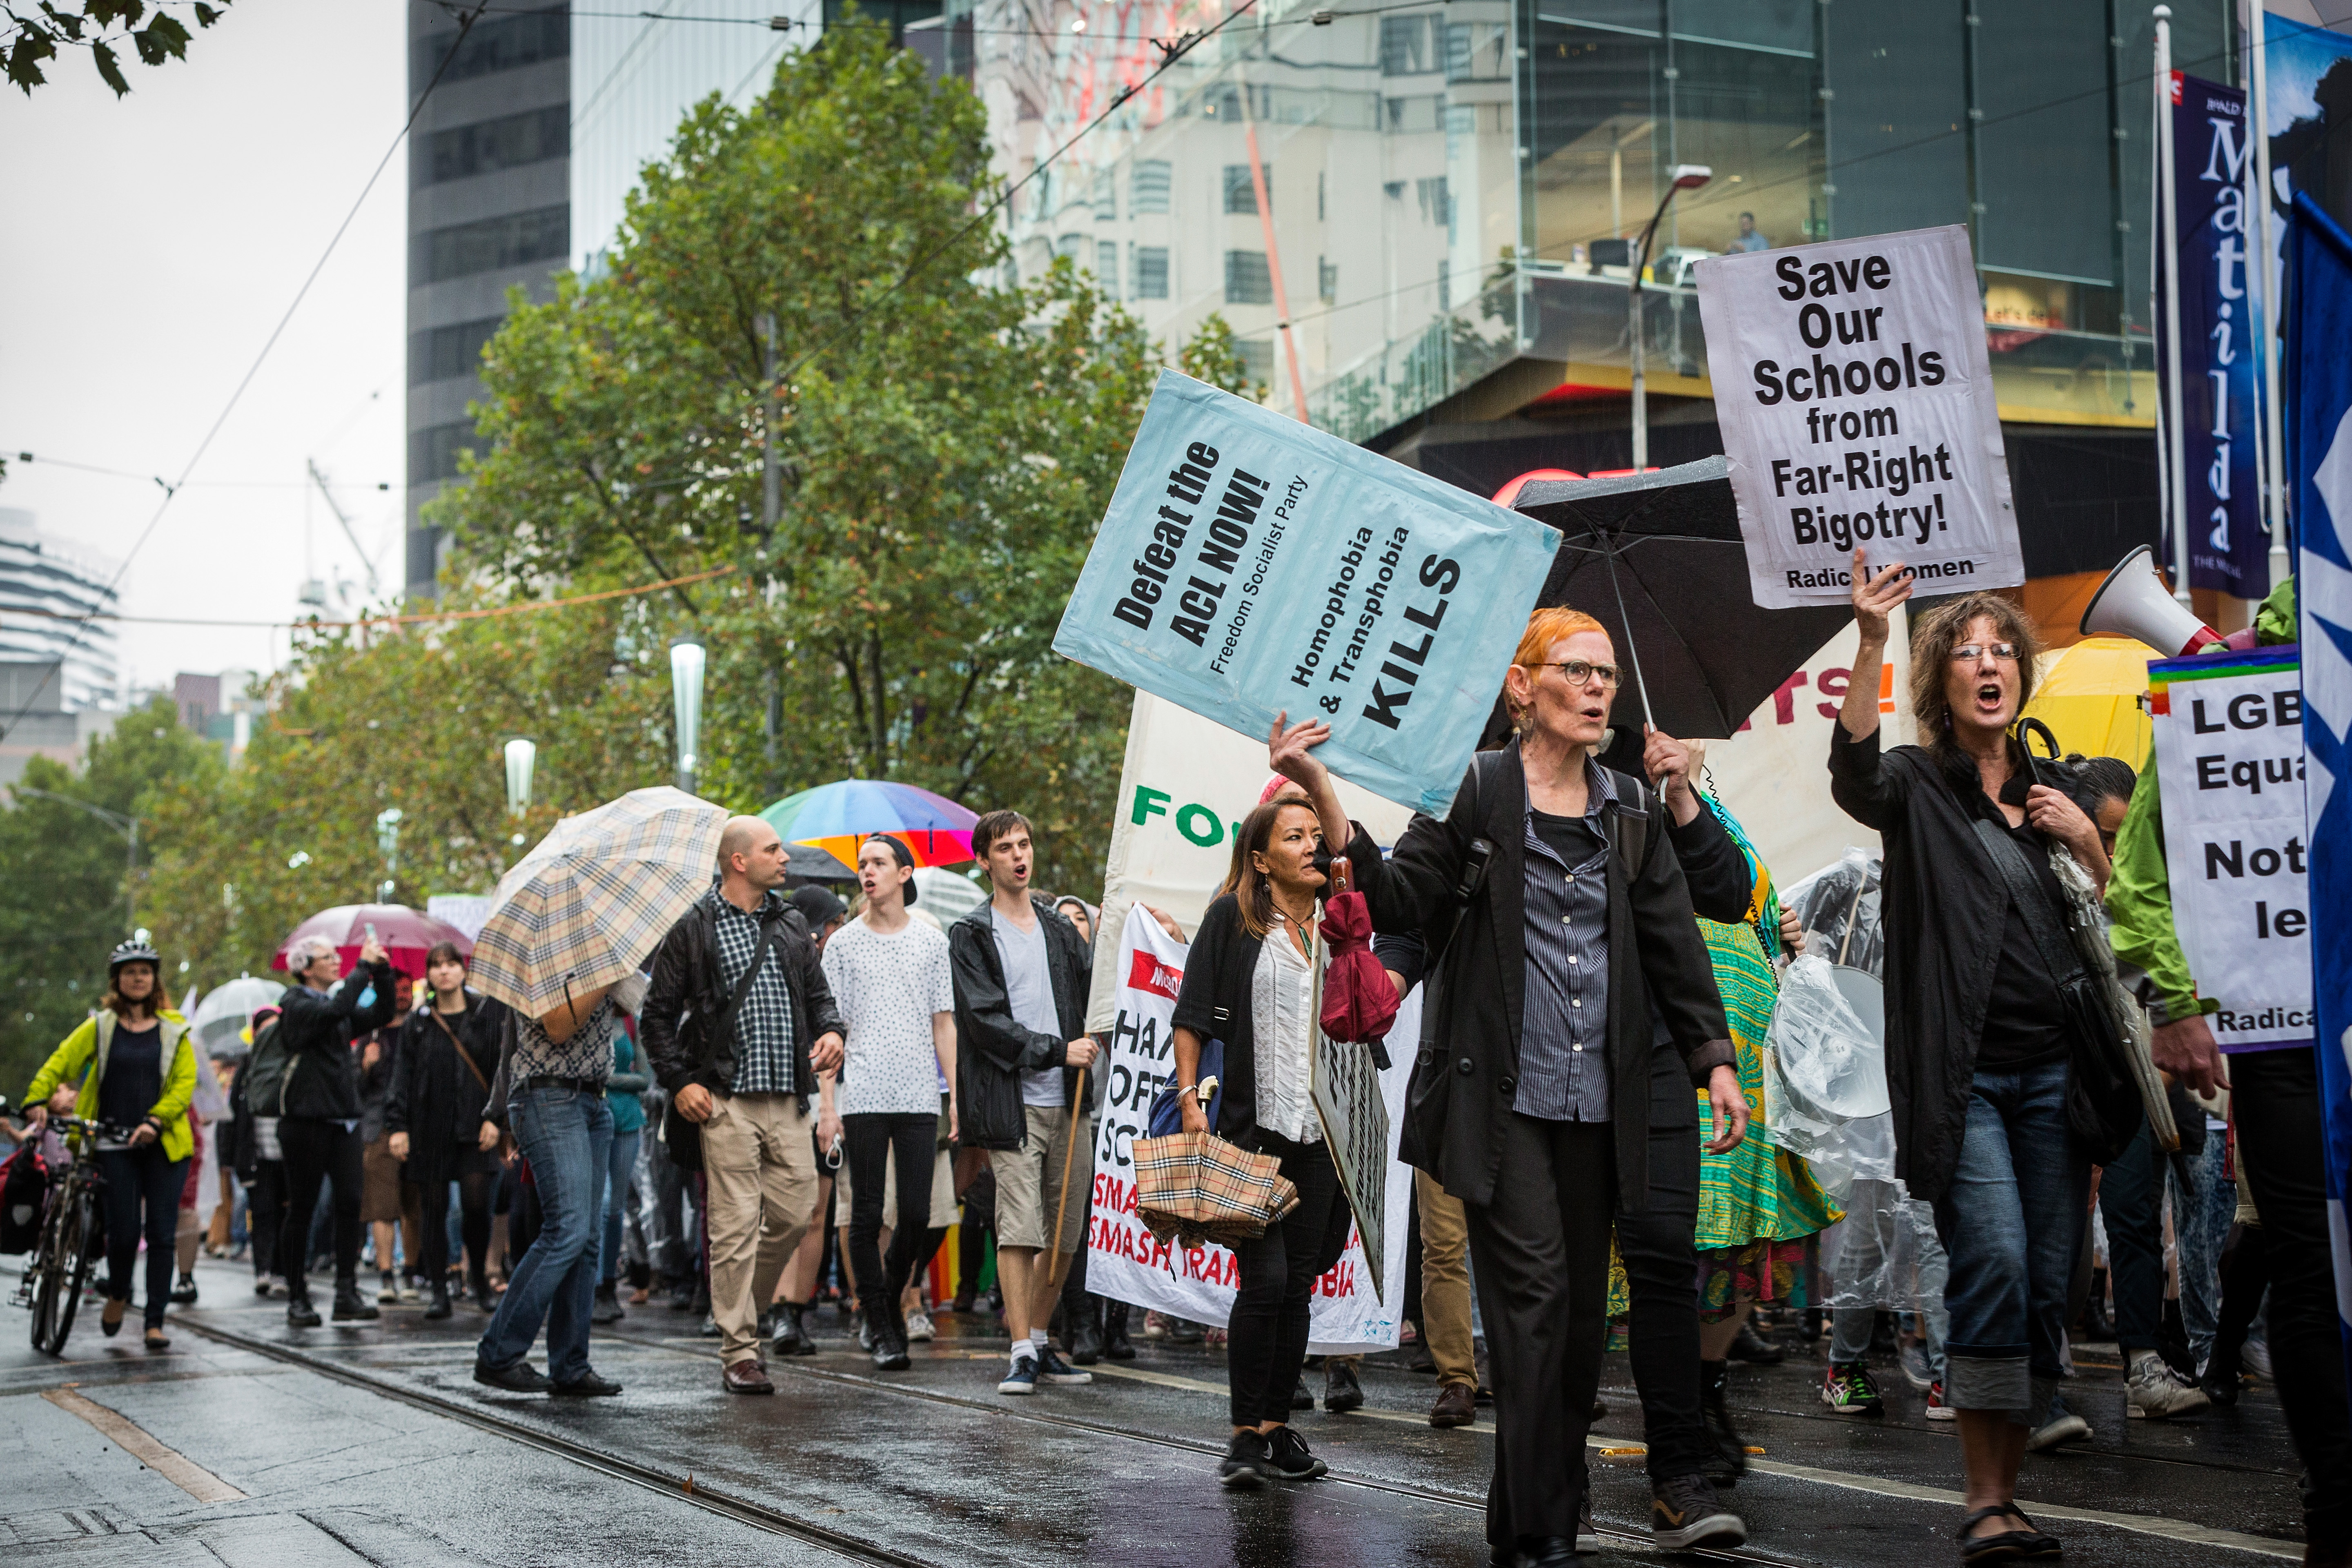 rotesters attend the Hands Off Safe Schools Rally on Swanston Street on March 10, 2016 in Melbourne, Australia. The Hands Off Safe School has been designed as a resource for teachers and students to assist with issues of homophobia and bullying. (Photo by Chris Hopkins/Getty Images)